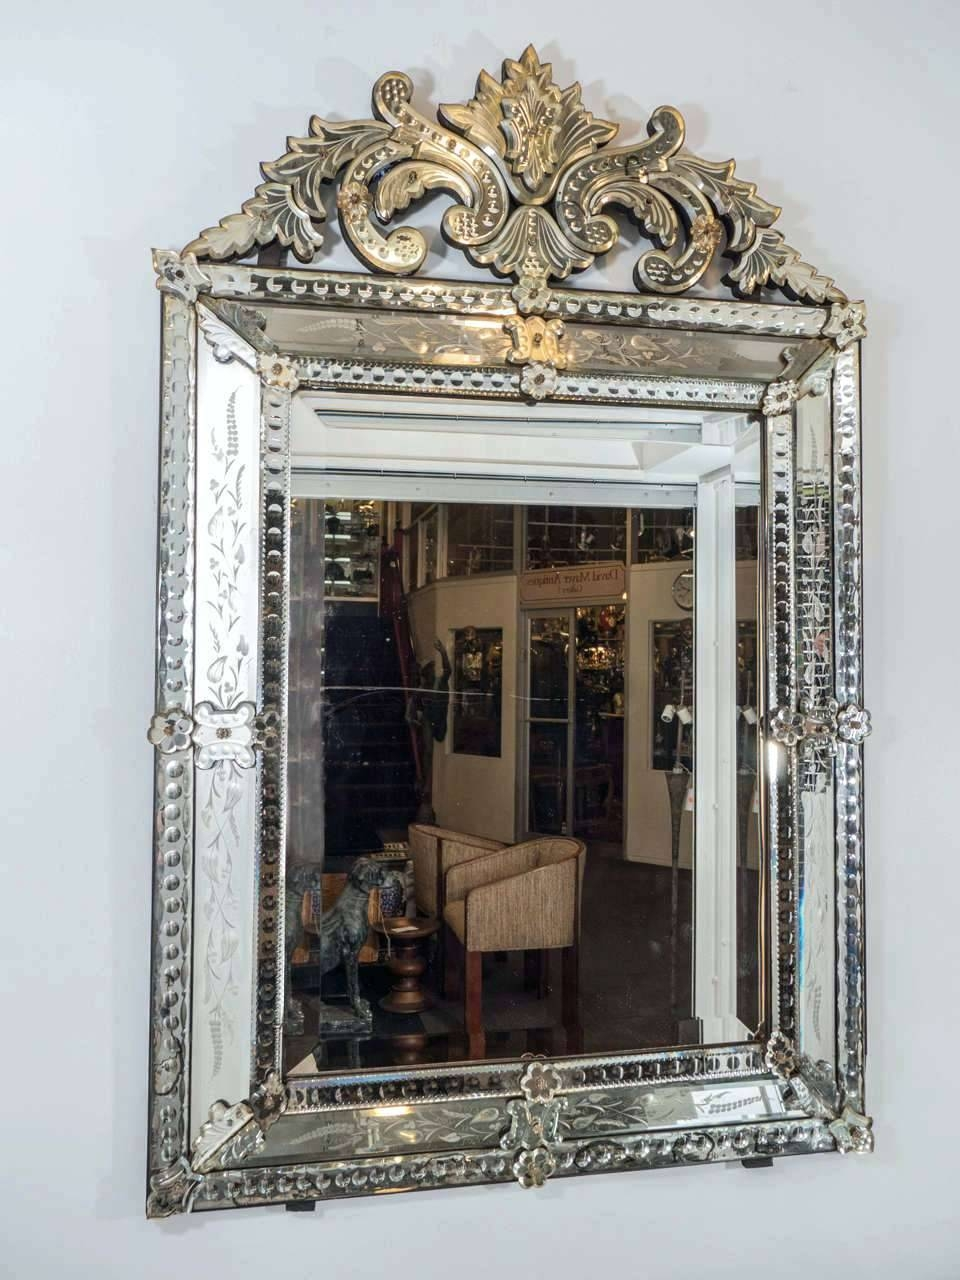 The best large venetian wall mirrors venetian wall mirrors amlvideo regarding large venetian wall mirrors image 15 of 15 amipublicfo Images